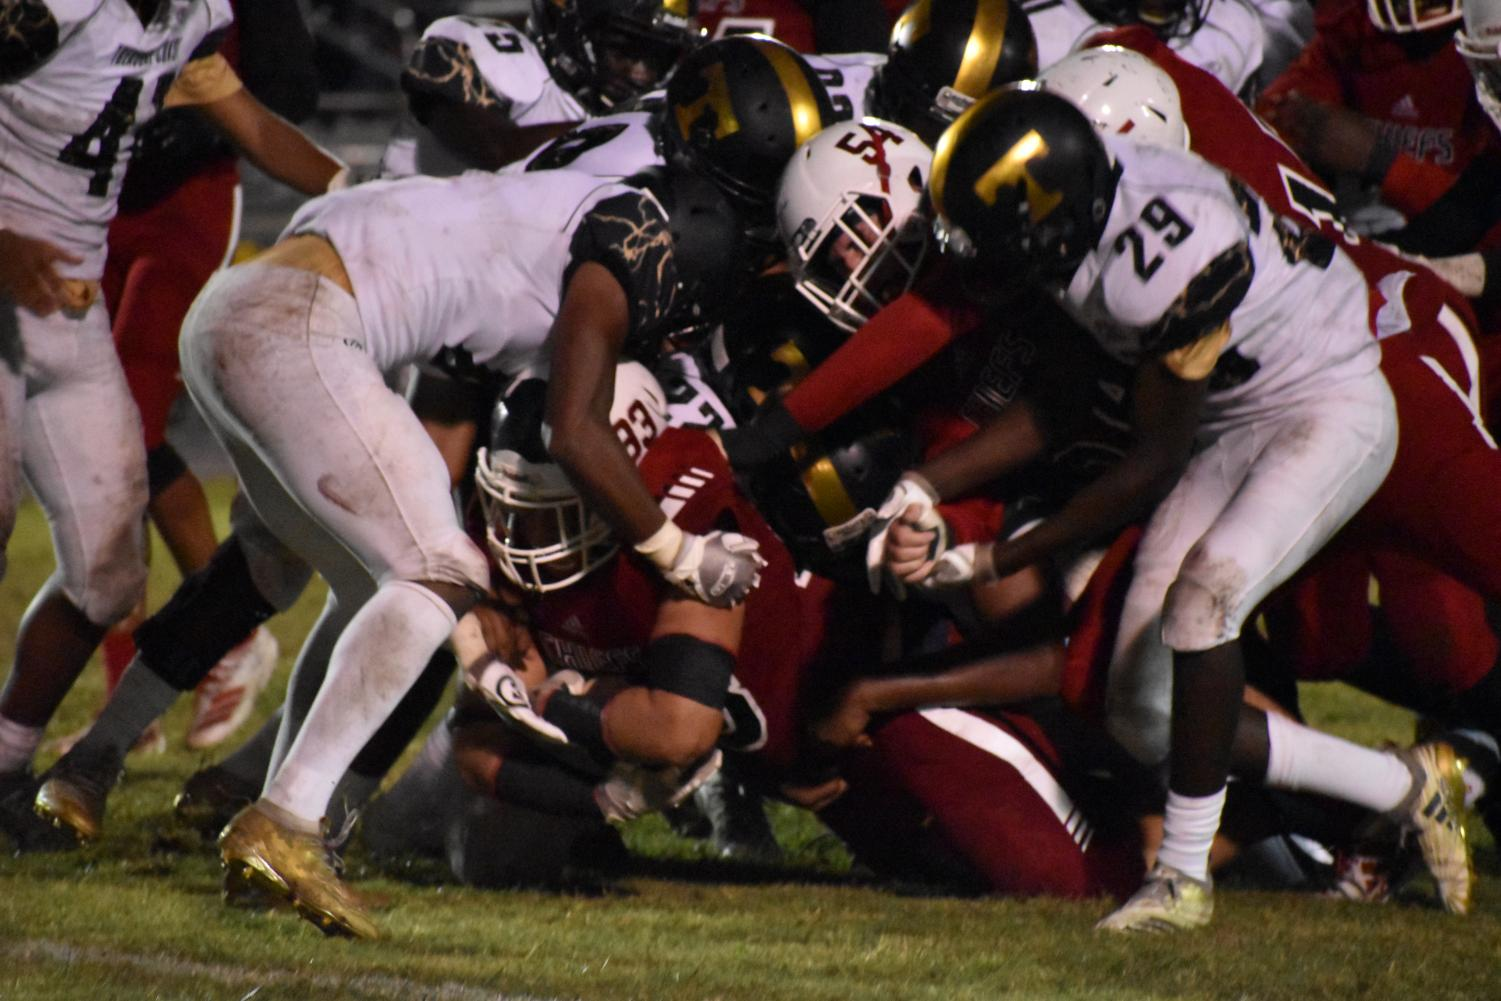 Coe Jr. grasps the ball as he gets covered in the Titan's defensive line.